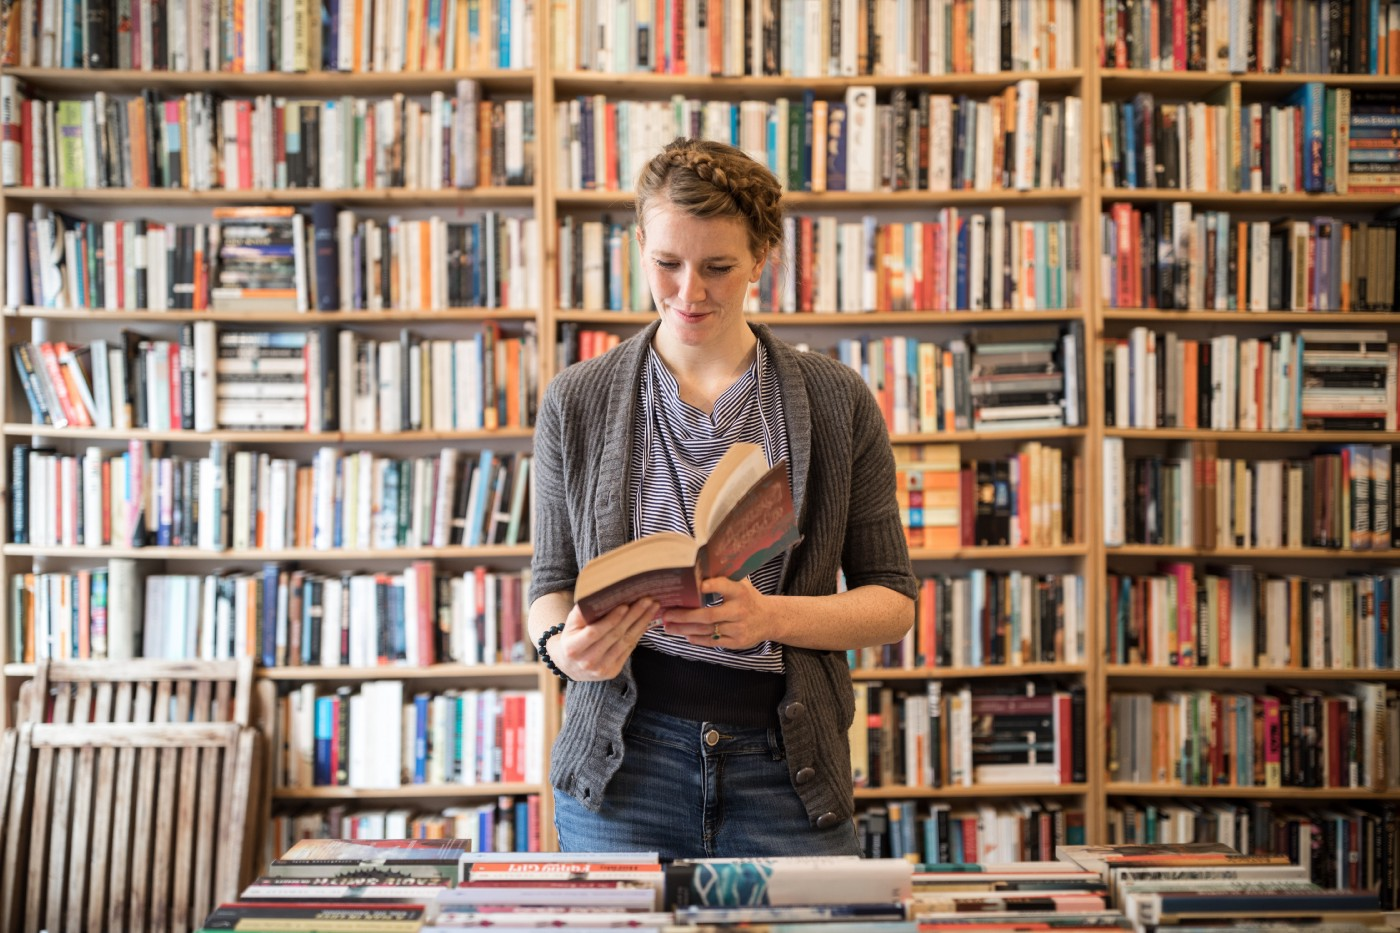 A young female customer  at bookstore standing against a bookshelf picks up a book and reads through it.